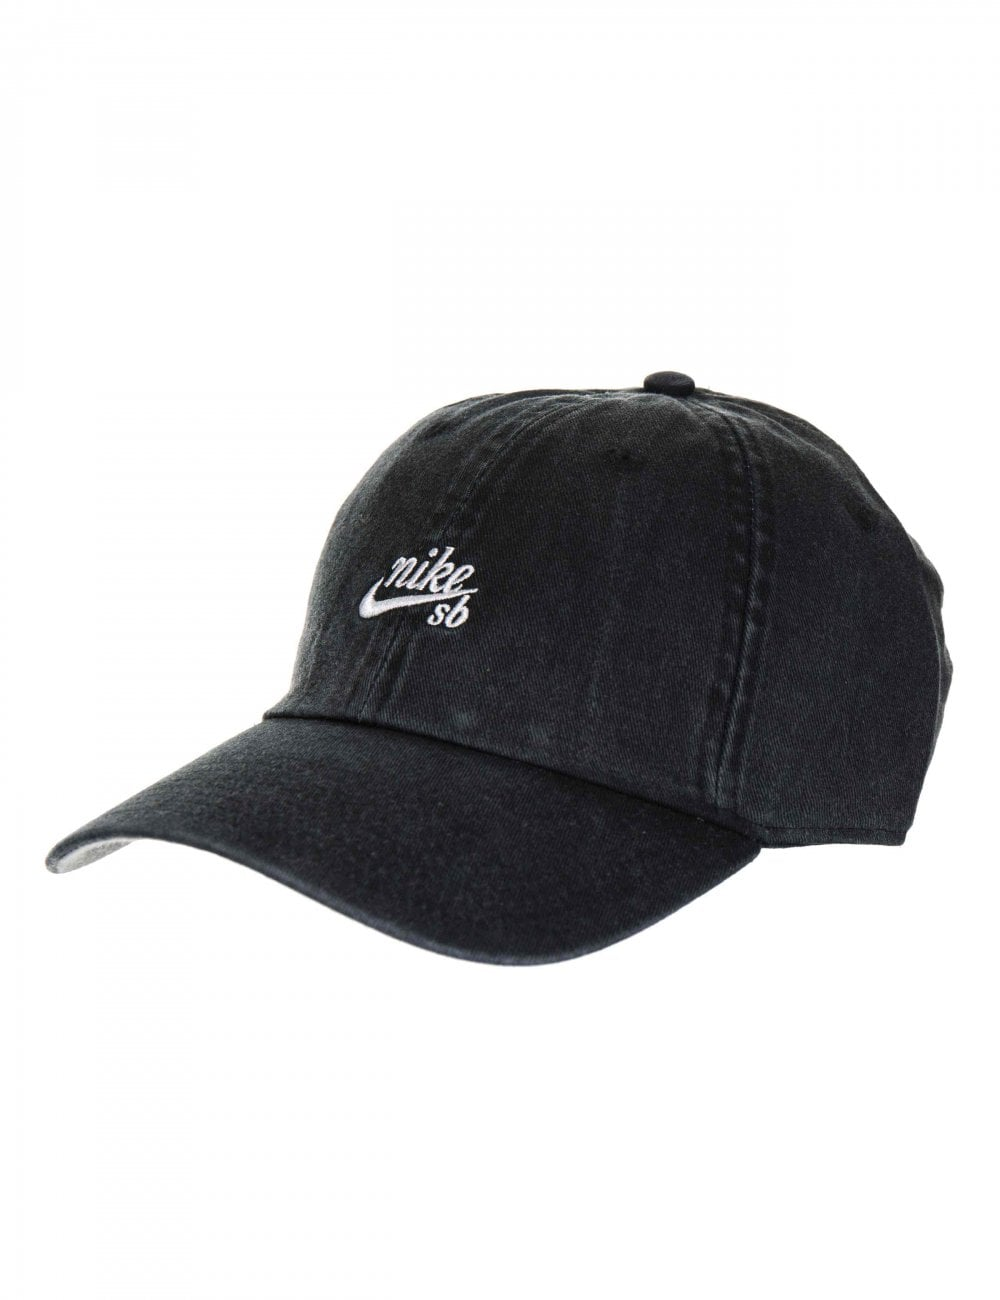 41f4f45d2ba Nike SB H86 Icon Adjustable Hat - Black - Hat Shop from Fat Buddha ...